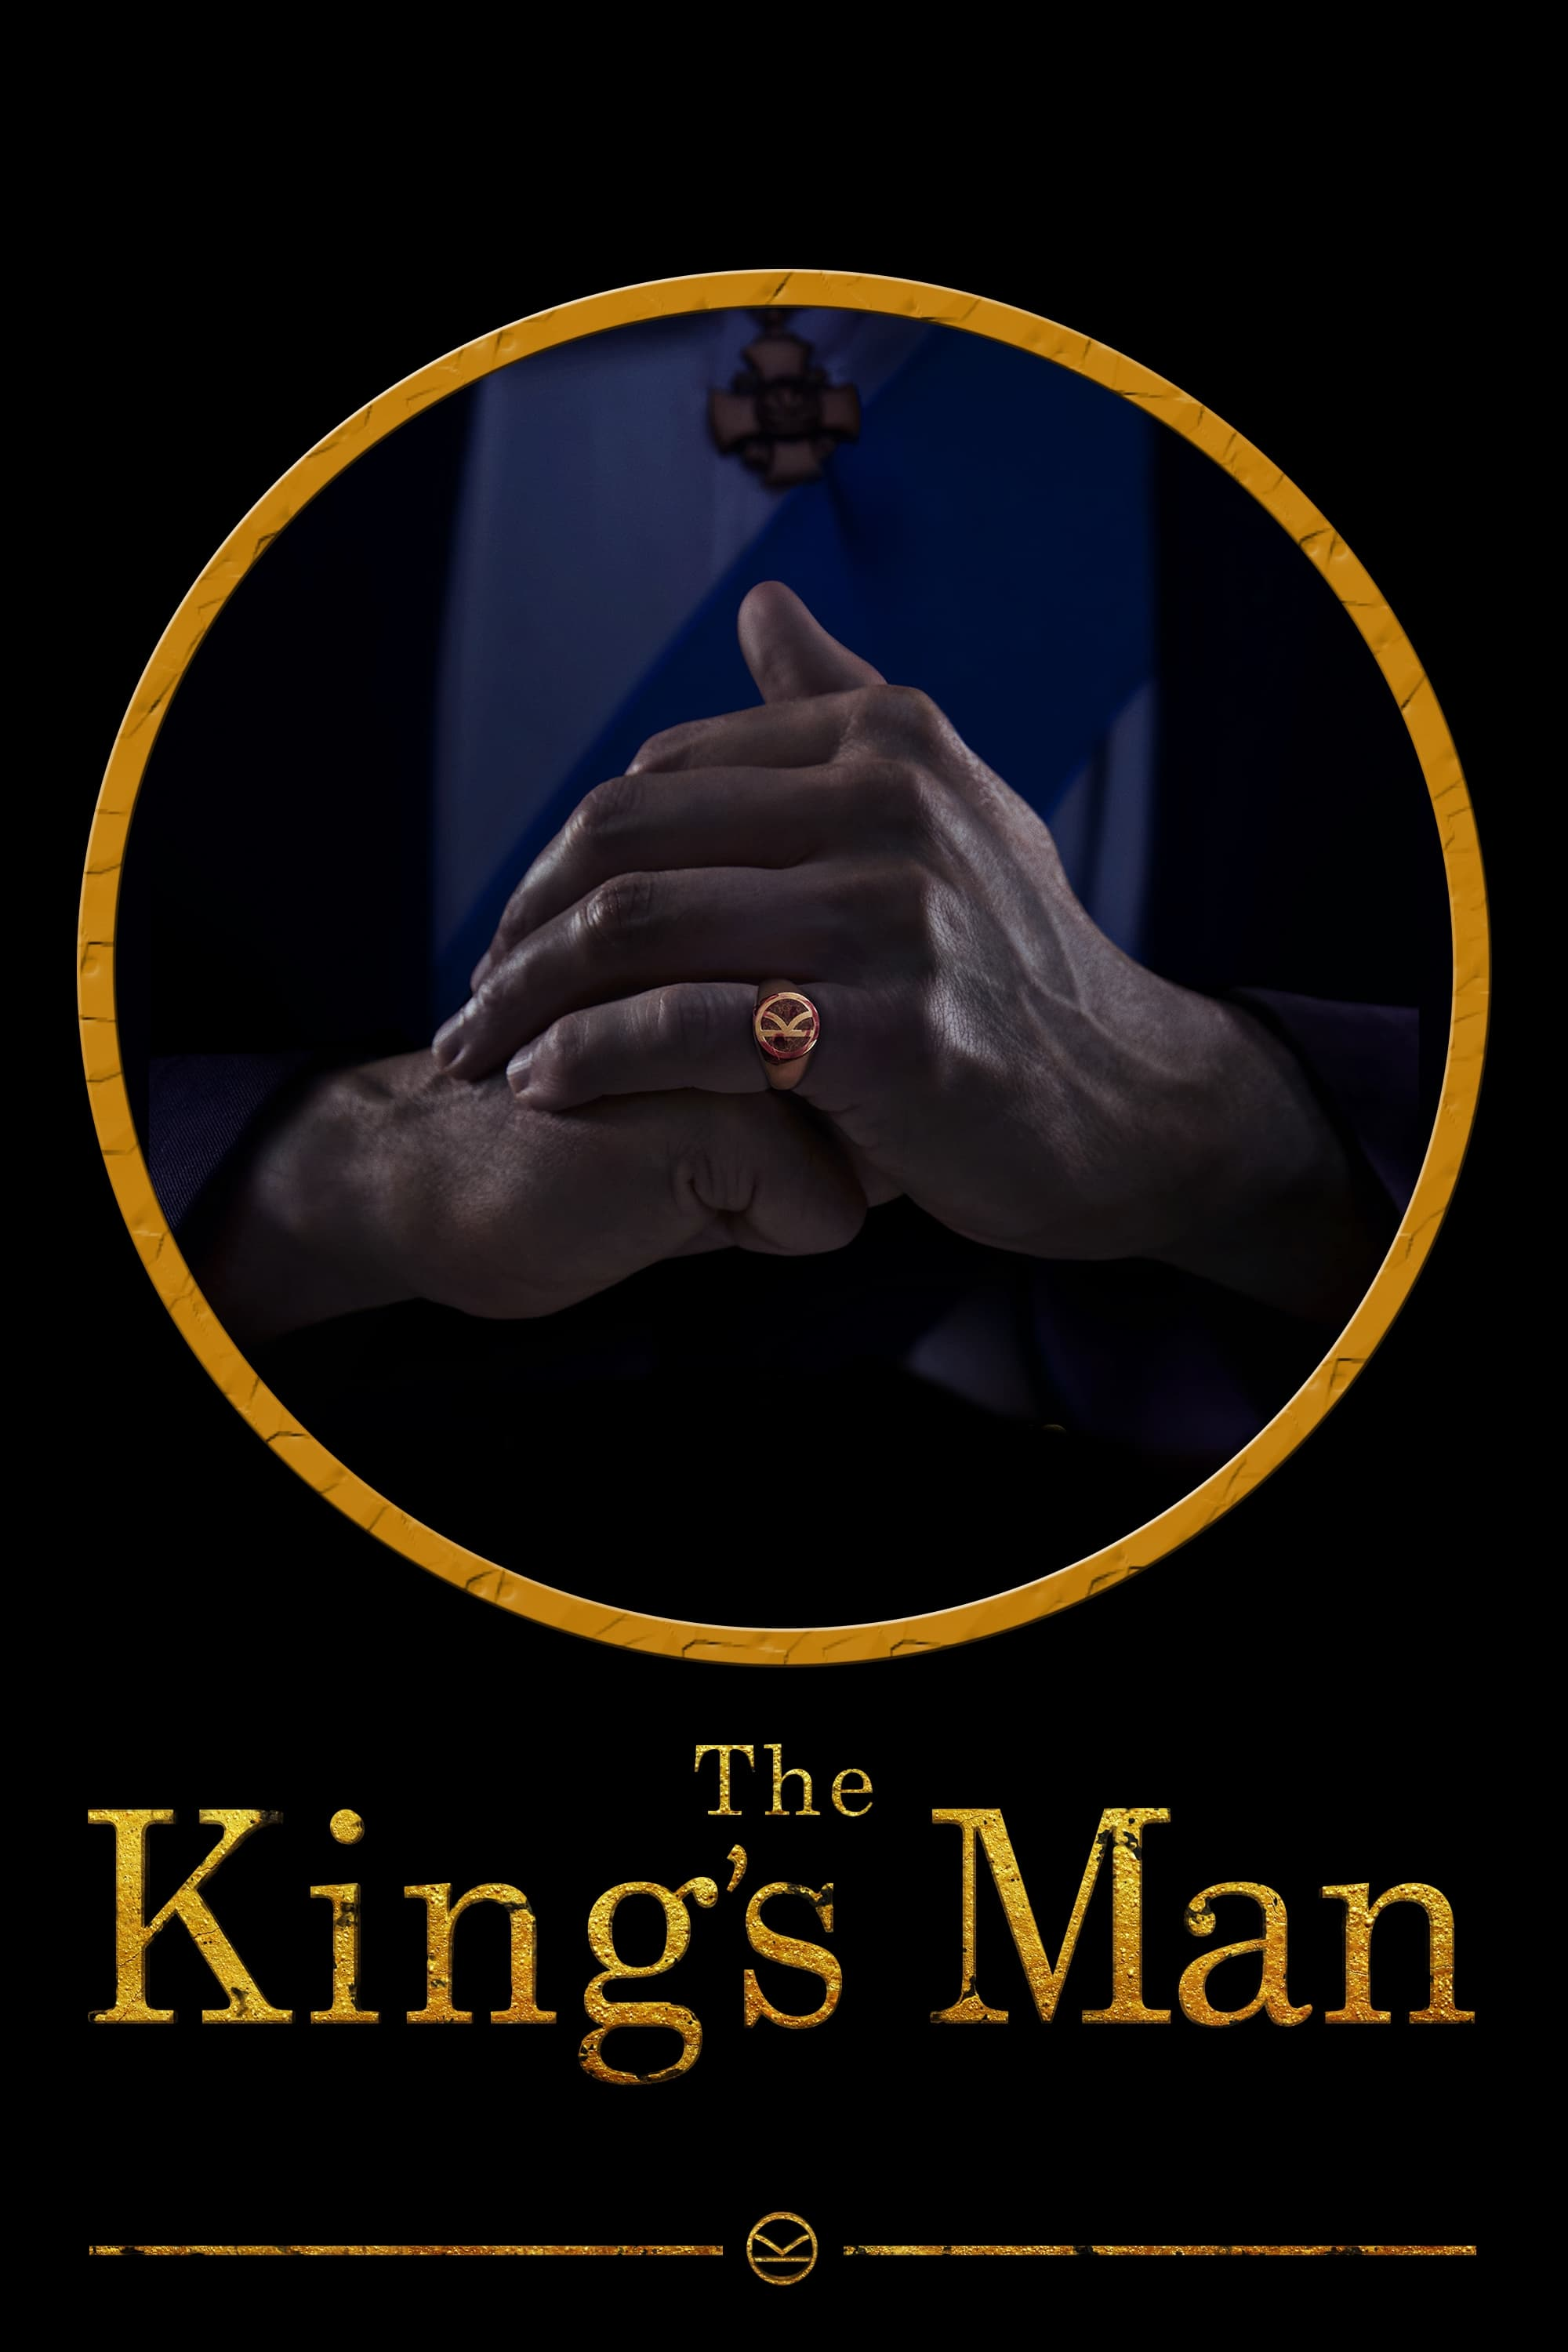 The King's Man (2021) Poster #2